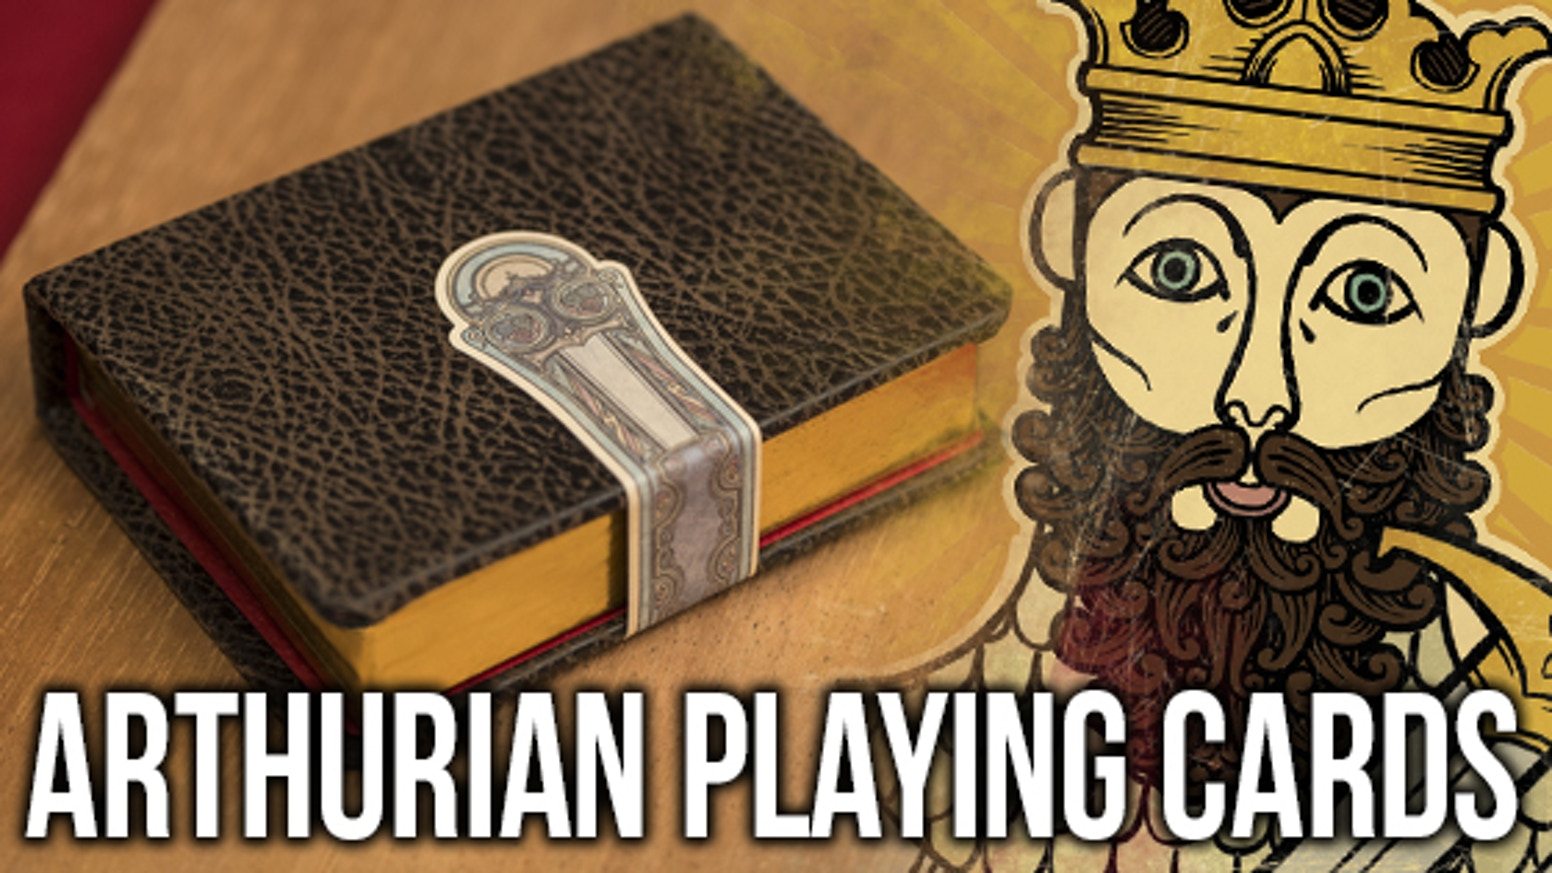 The Arthurian is a luxury deck of playing cards inspired by the King Arthur Legend illustrated in the style of The Book of Kells.